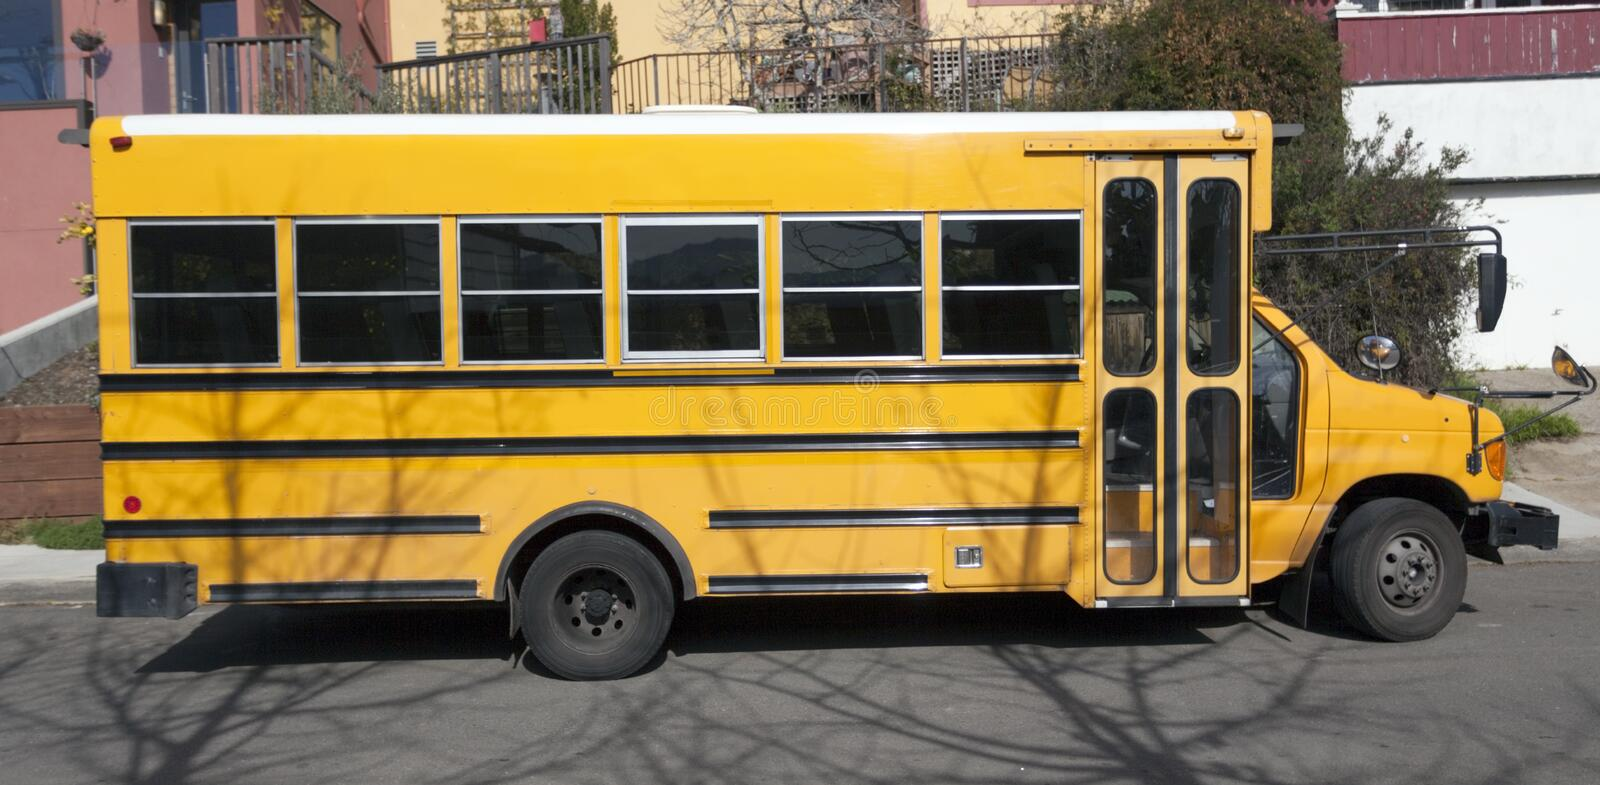 Parked School Bus royalty free stock photos